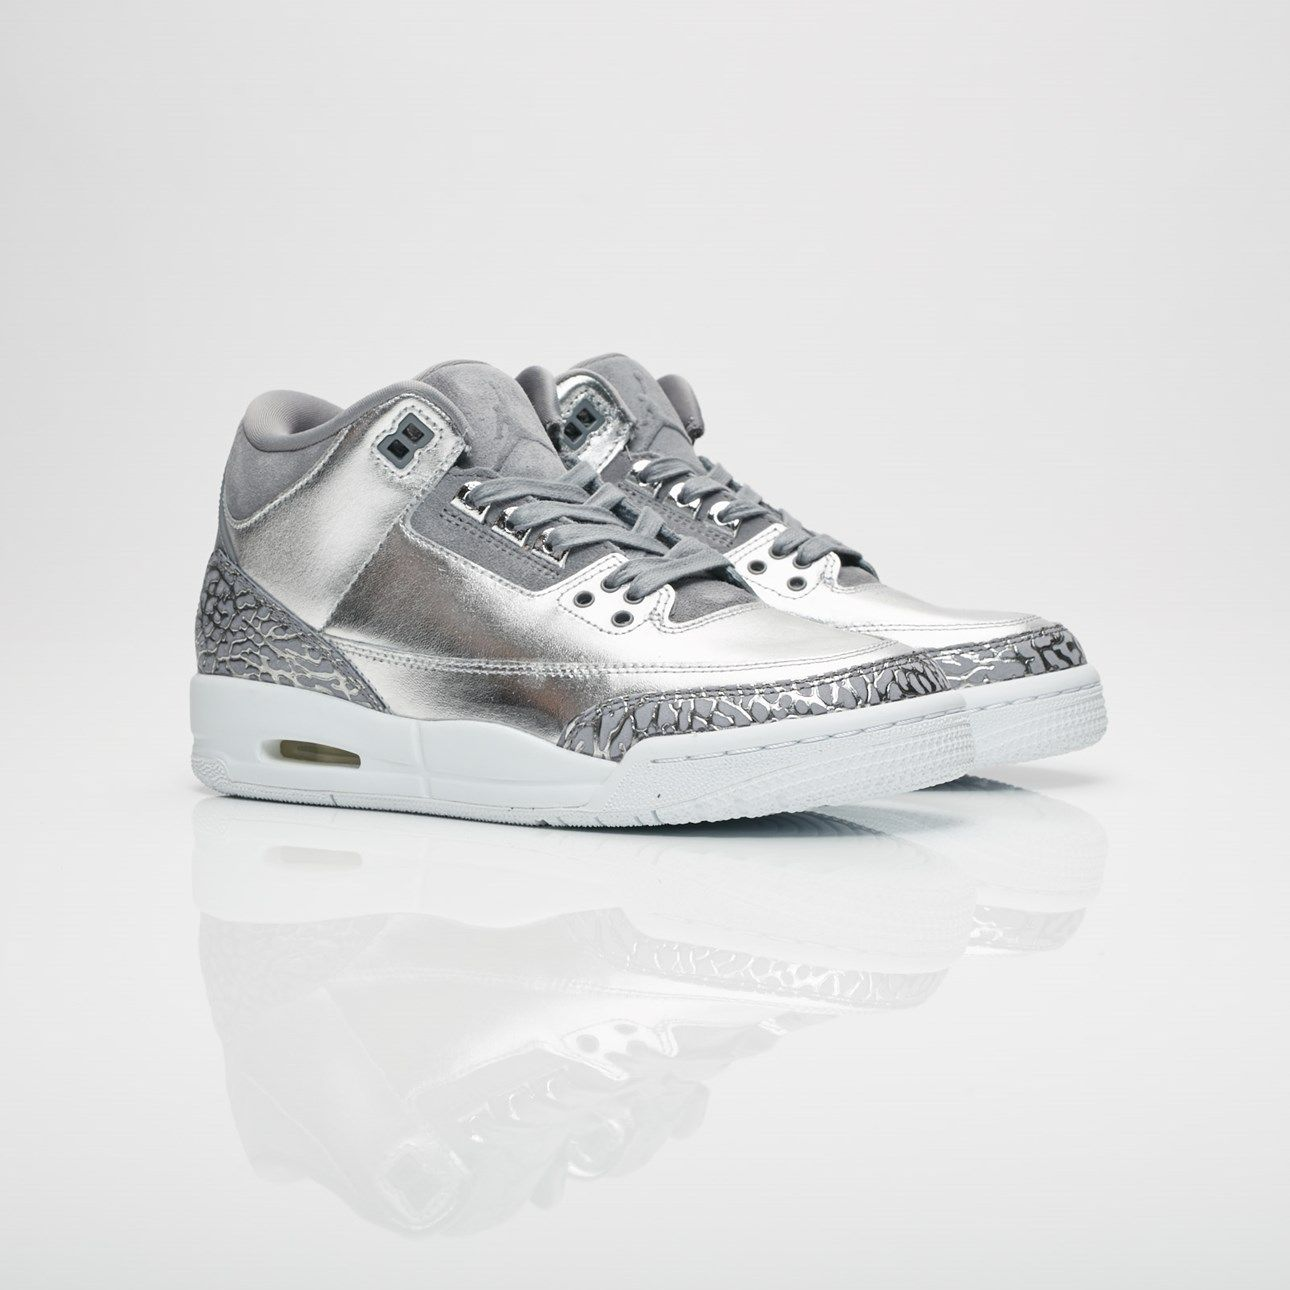 best service b92f2 447b3 Jordan Brand Air Jordan 3 Retro Premium Hc | want | Air ...